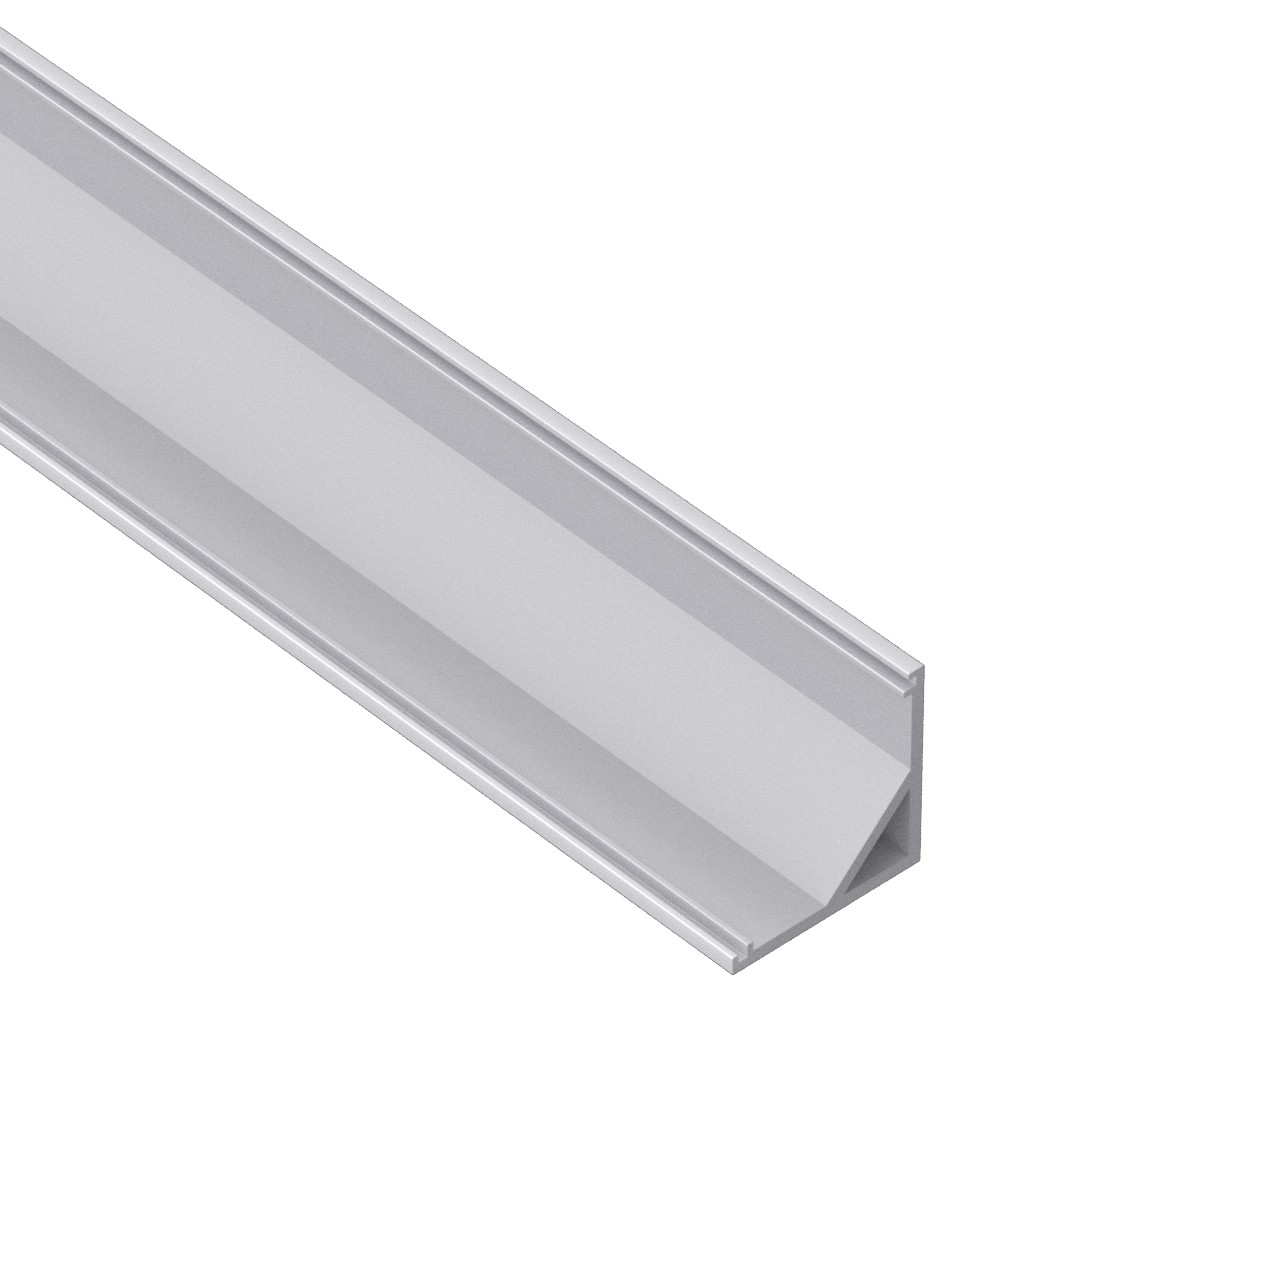 AC4 Bigger 45˚ Corner Aluminium LED Profile for LED Strip 30x30mm